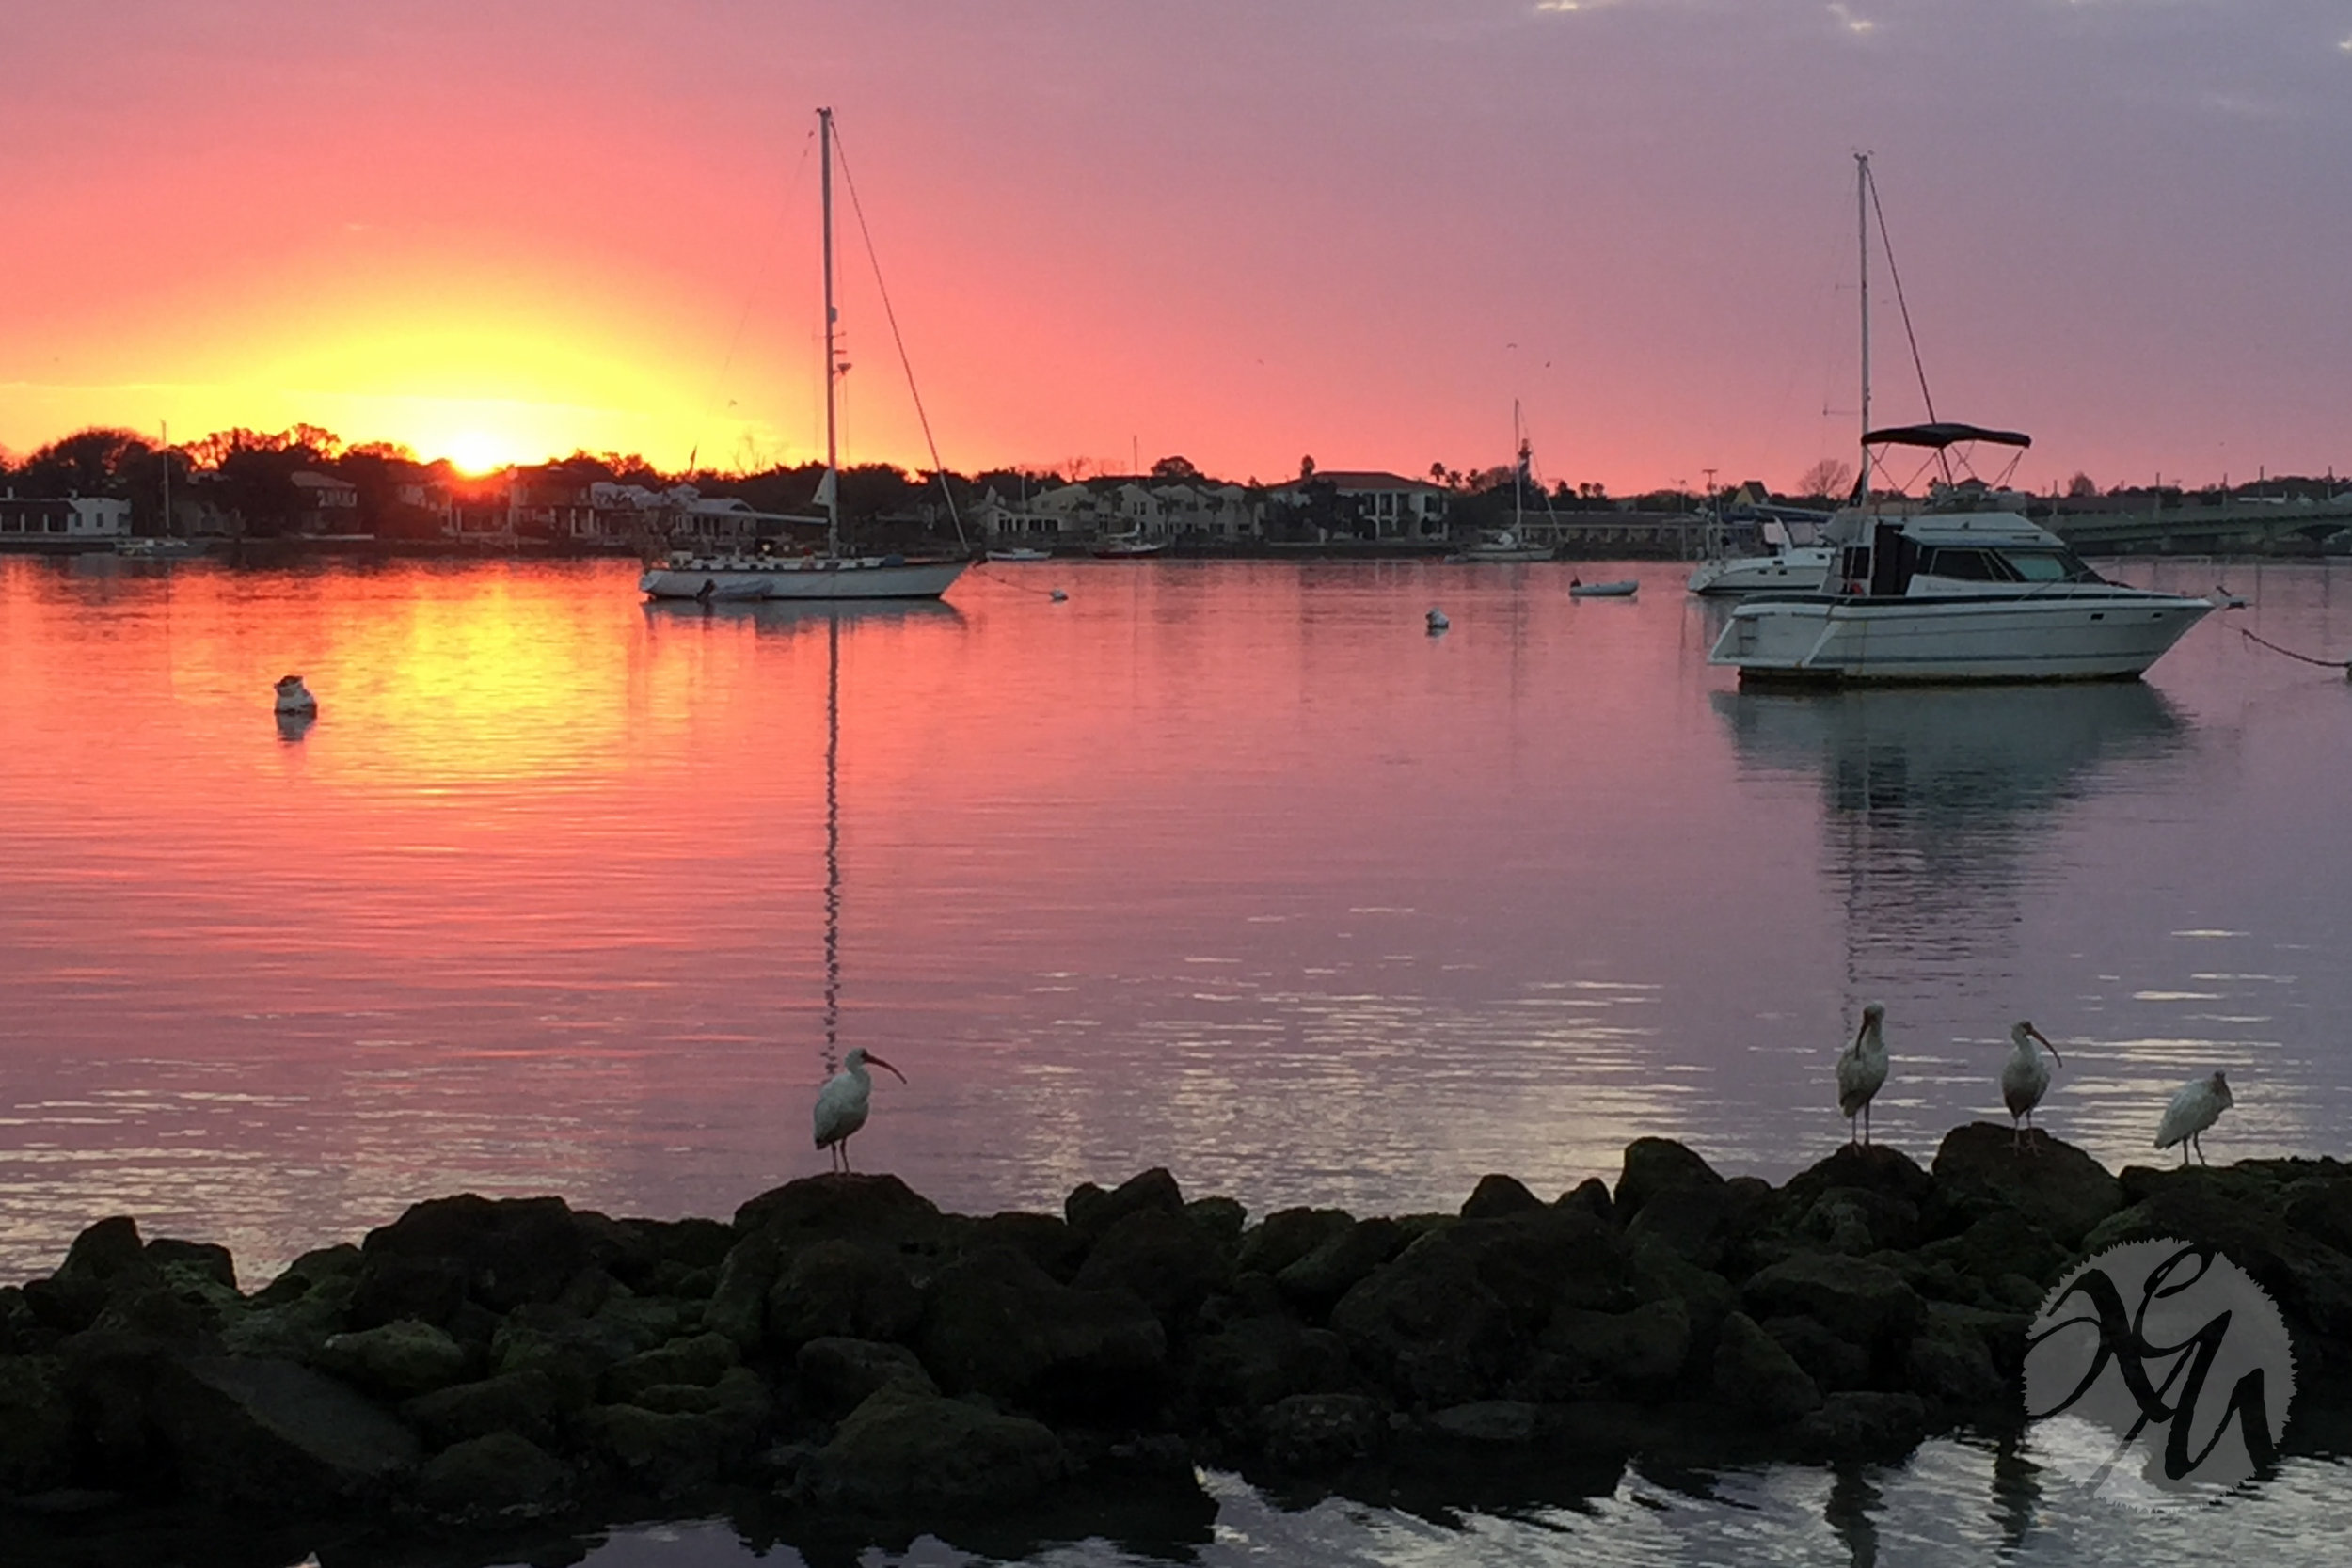 A particularly stunning sunrise in St. Augustine, Florida in February 2017.